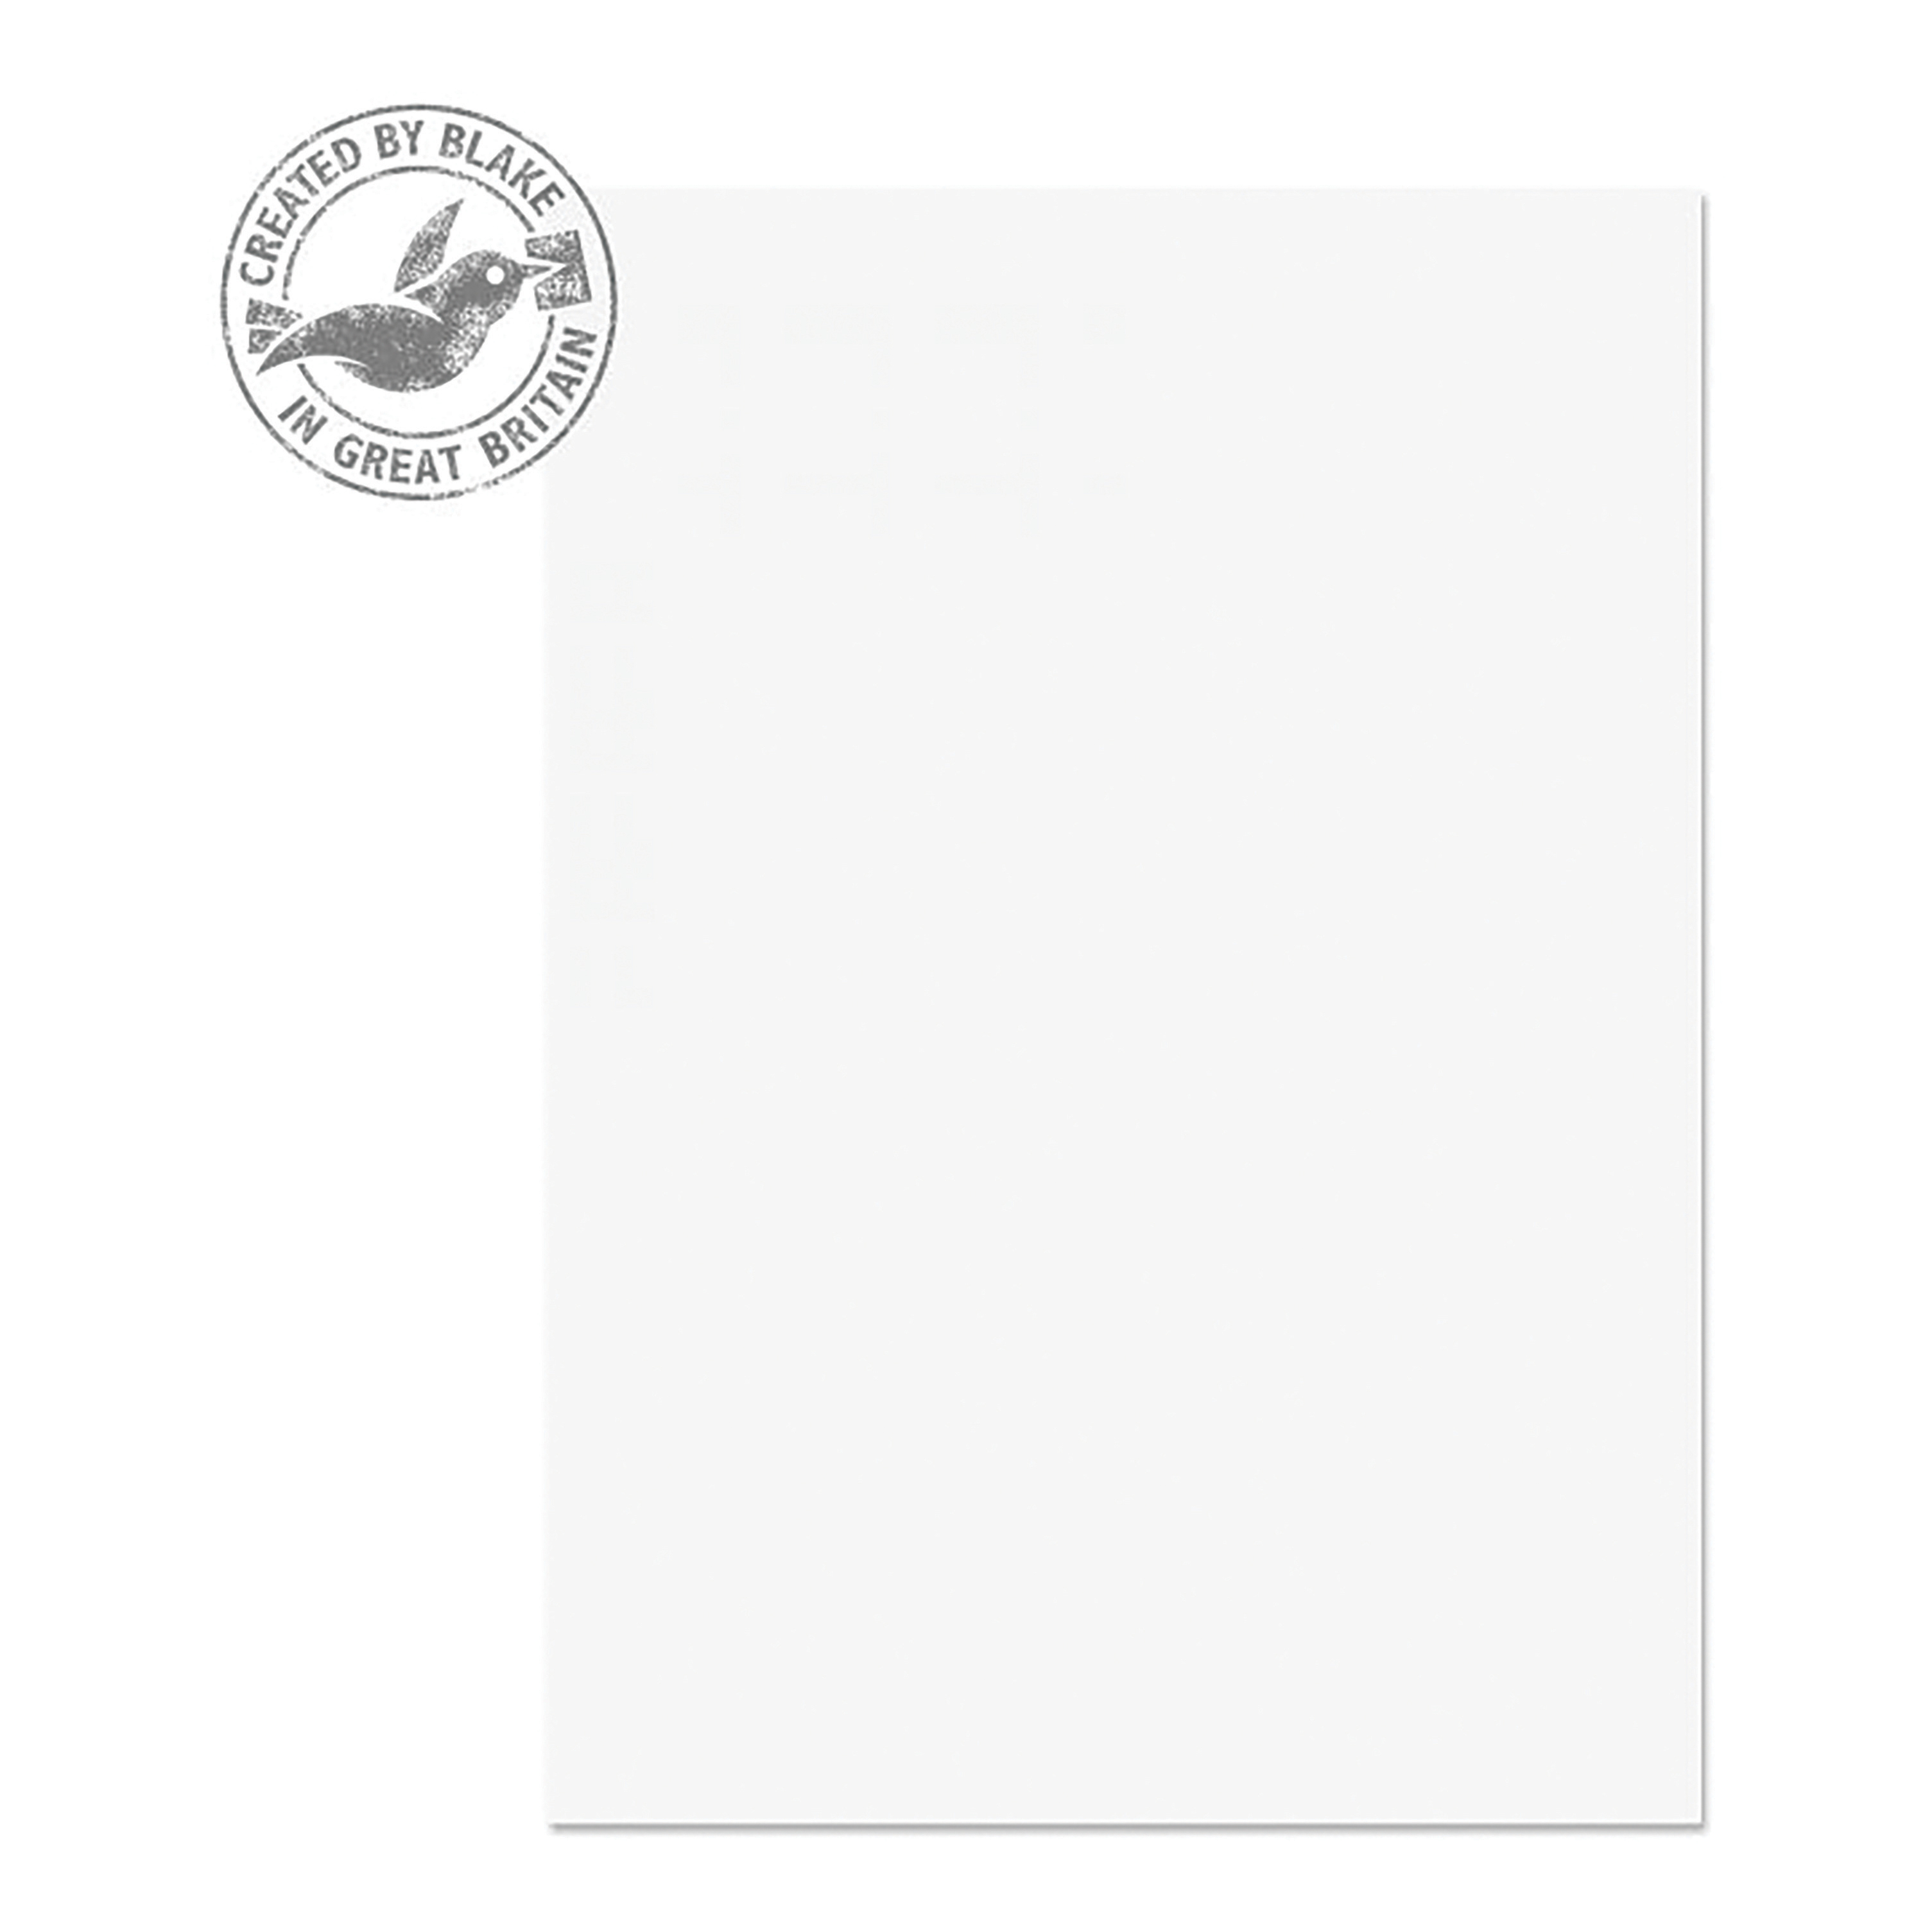 Blake Premium FSC Business Paper Smooth Finish Ream Wrapped 120gsm A4 Diamond White Ref 36677 [Pack 500]